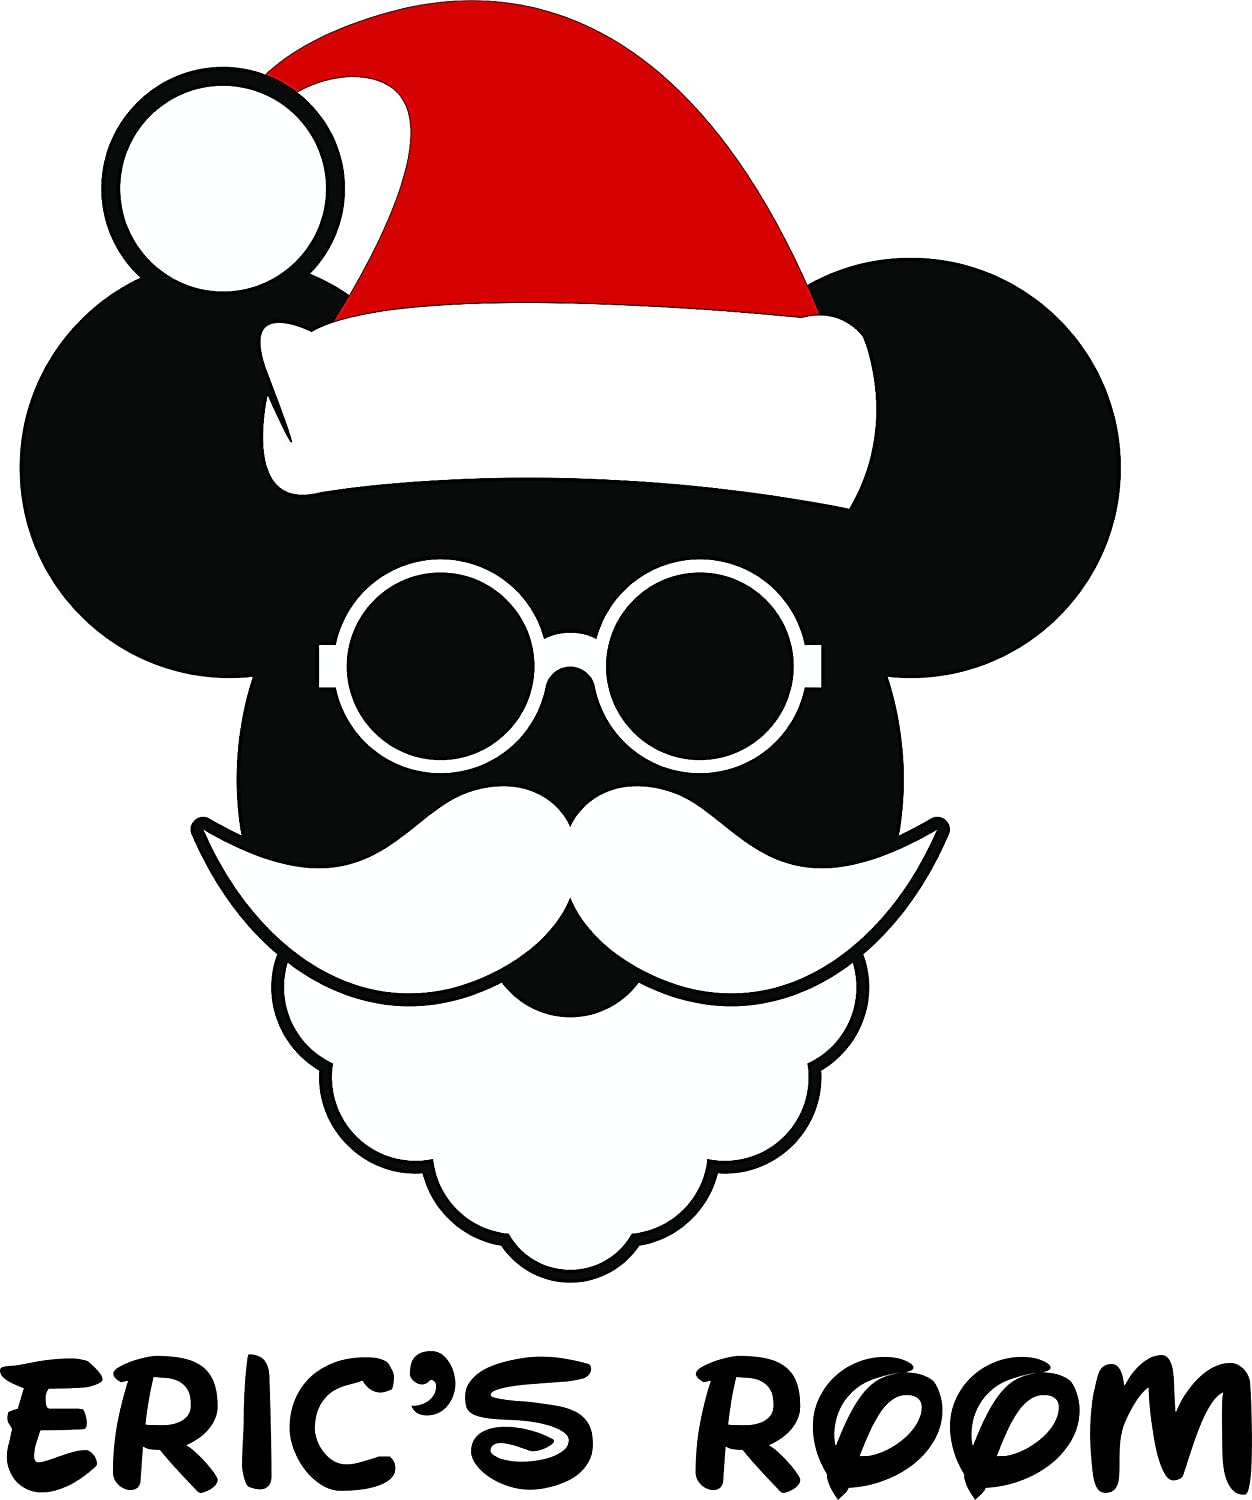 Christmas Minnie Mouse Disneyland.Amazon Com Santa Clause Design Christmas Cheer Quote Quotes